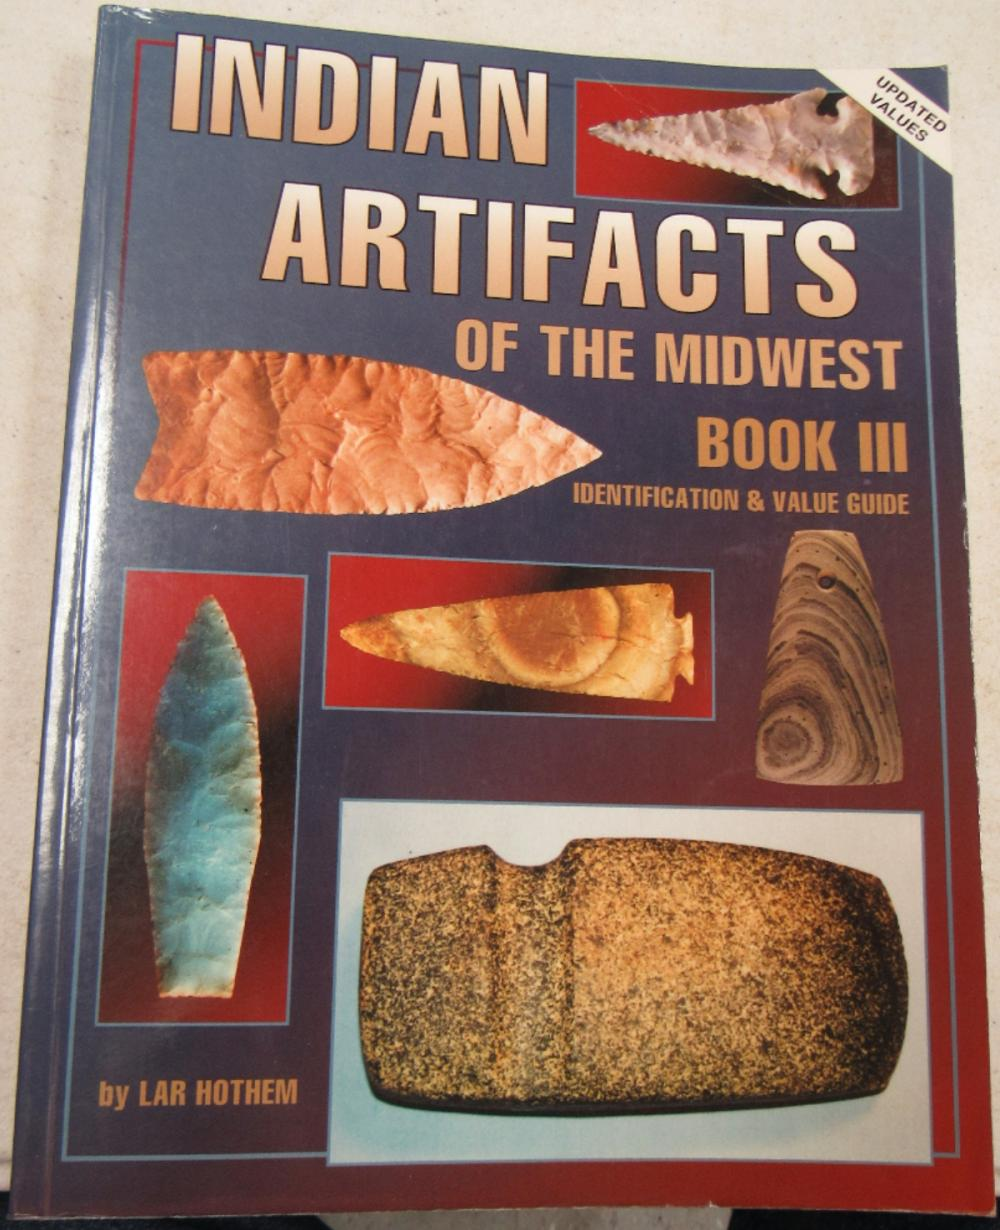 Indian Artifacts of the Midwest Book III by Lar Hothem, Soft Cover, 1999, EC